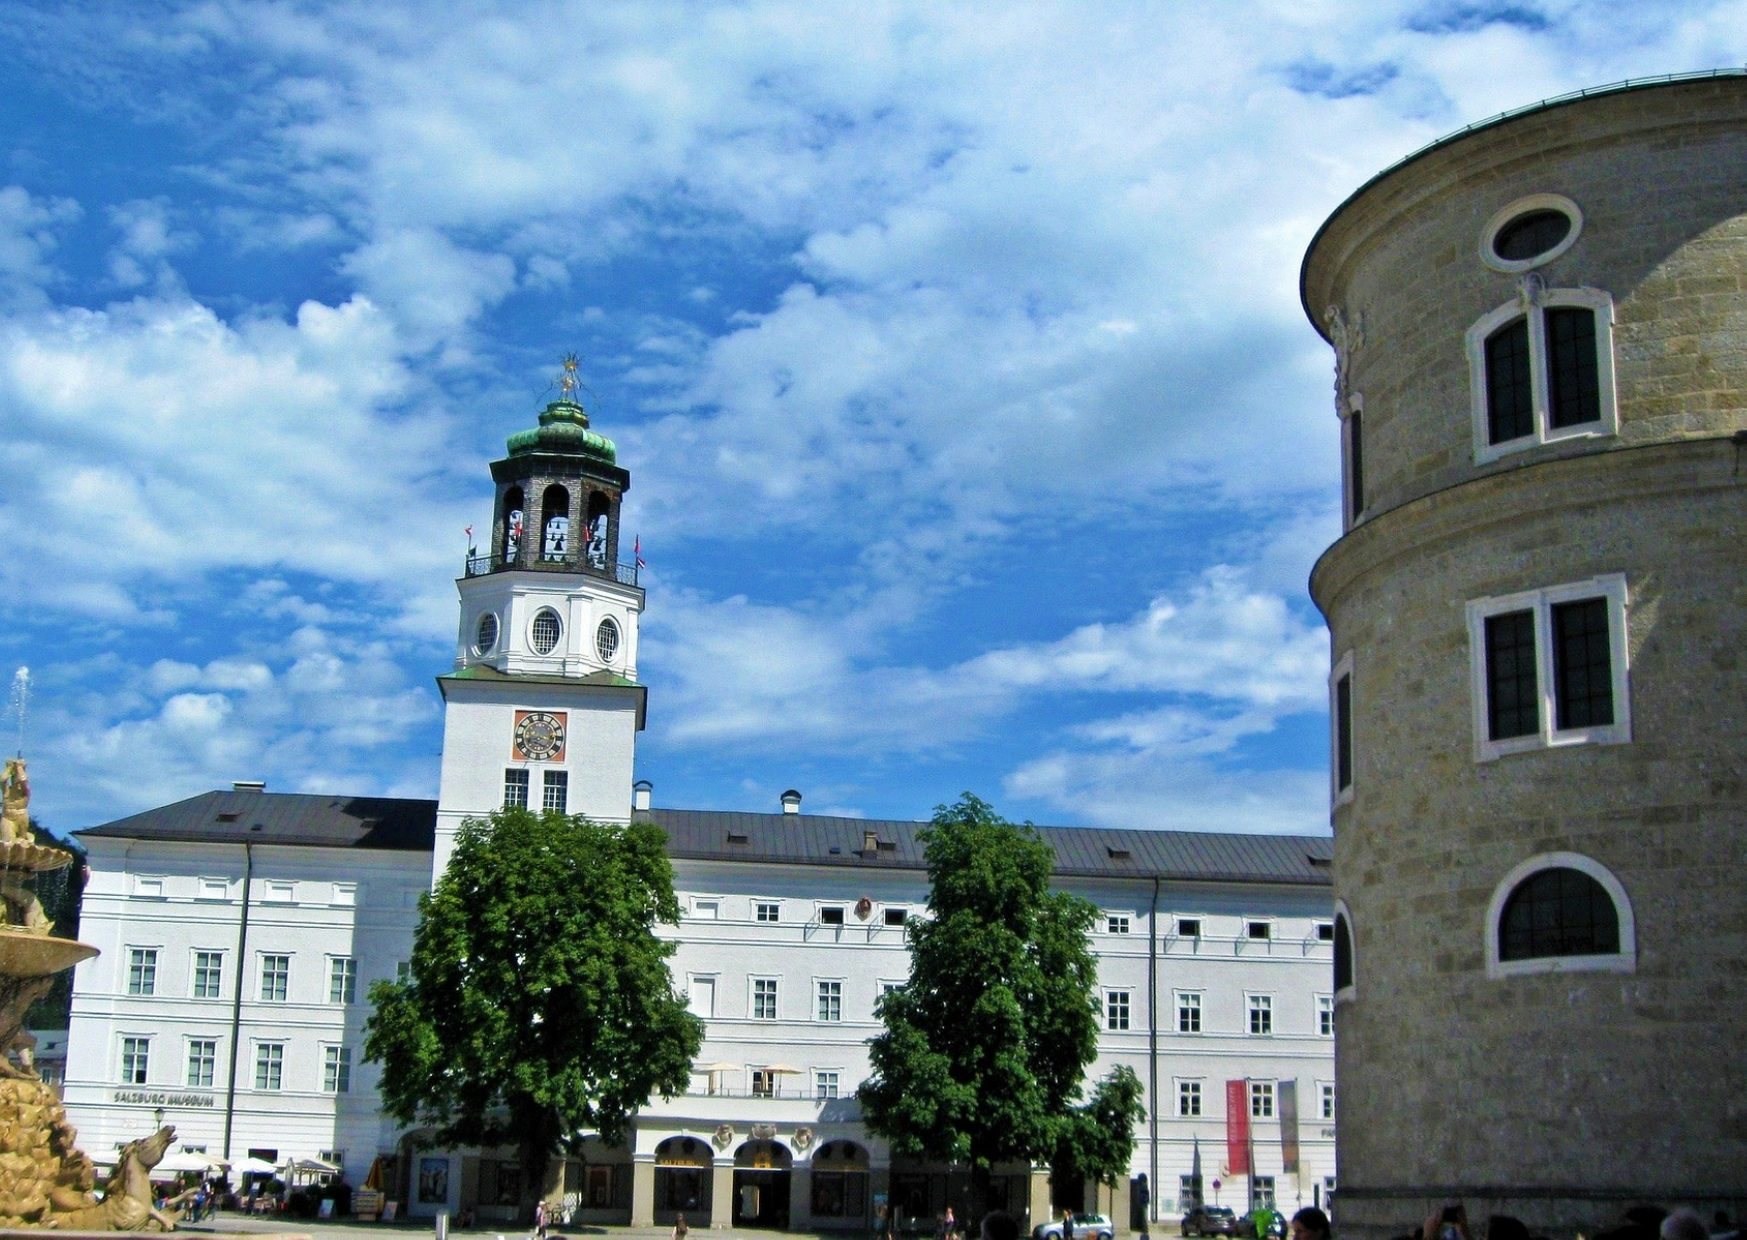 Salzburg Museum is one of the top attractions in Salzburg- photo by Voices of Travel